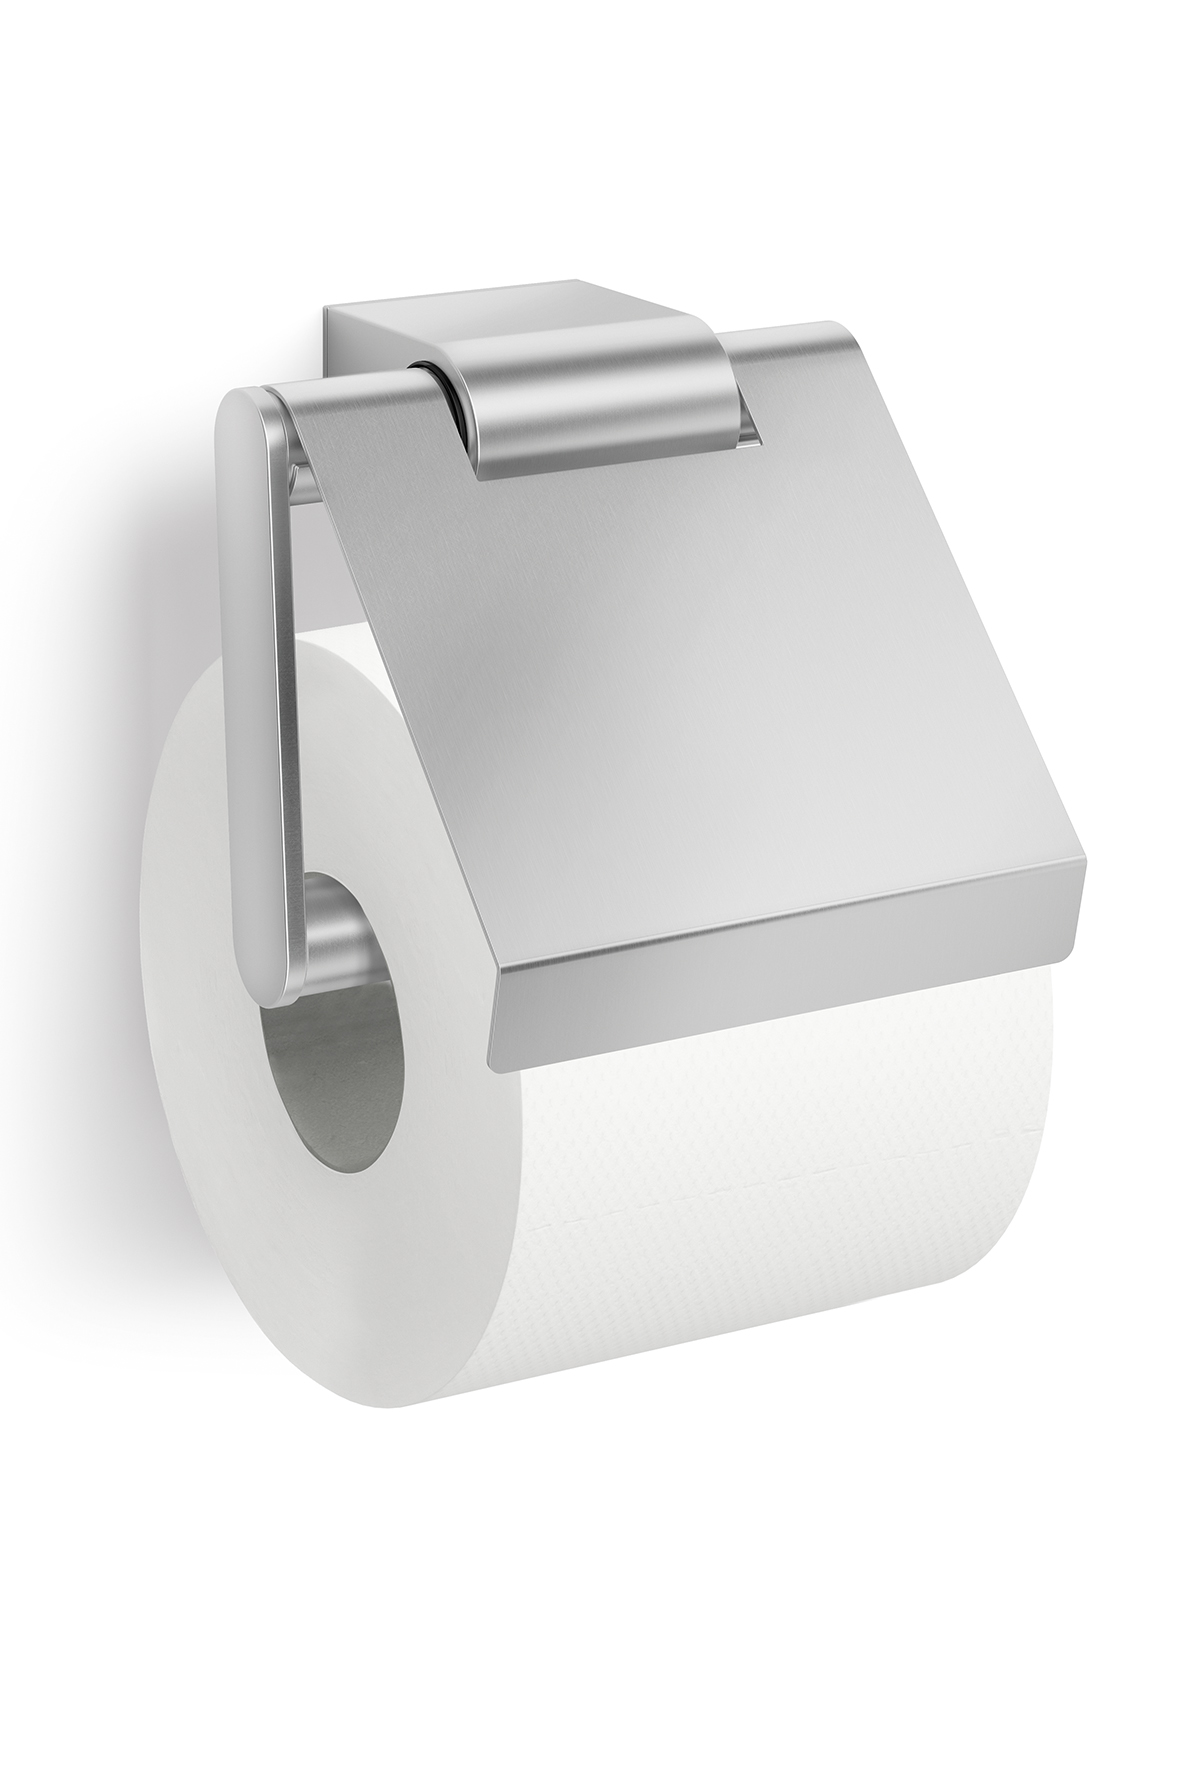 Atore Toilet Roll Holder With Flap